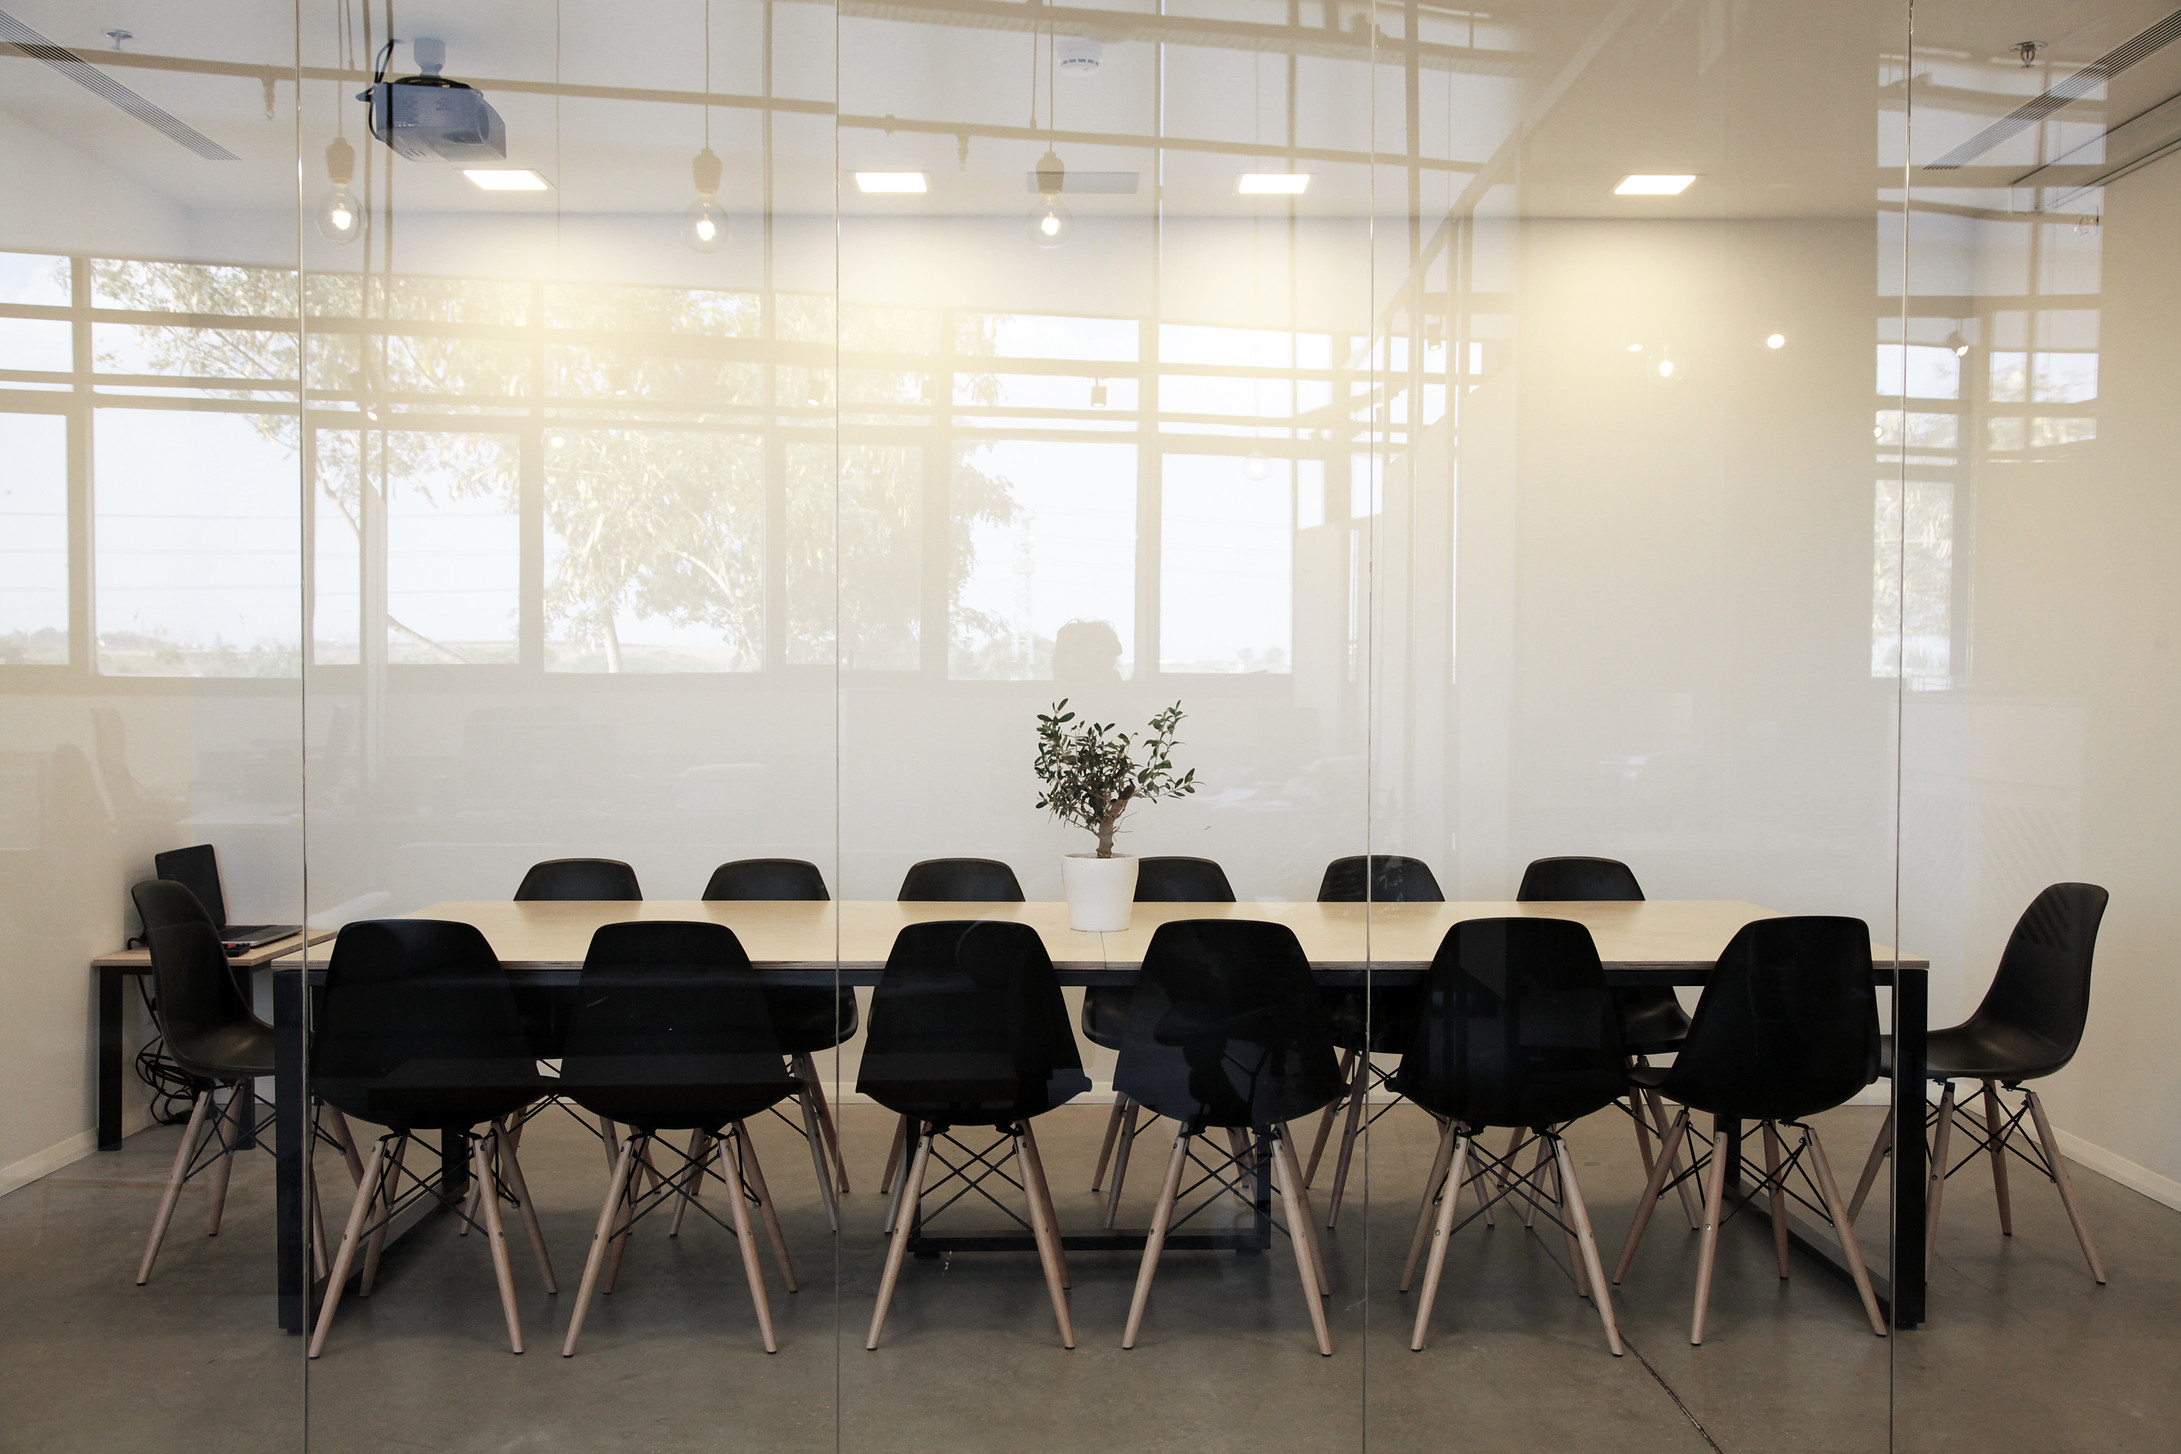 Office meeting room. Eames chairs